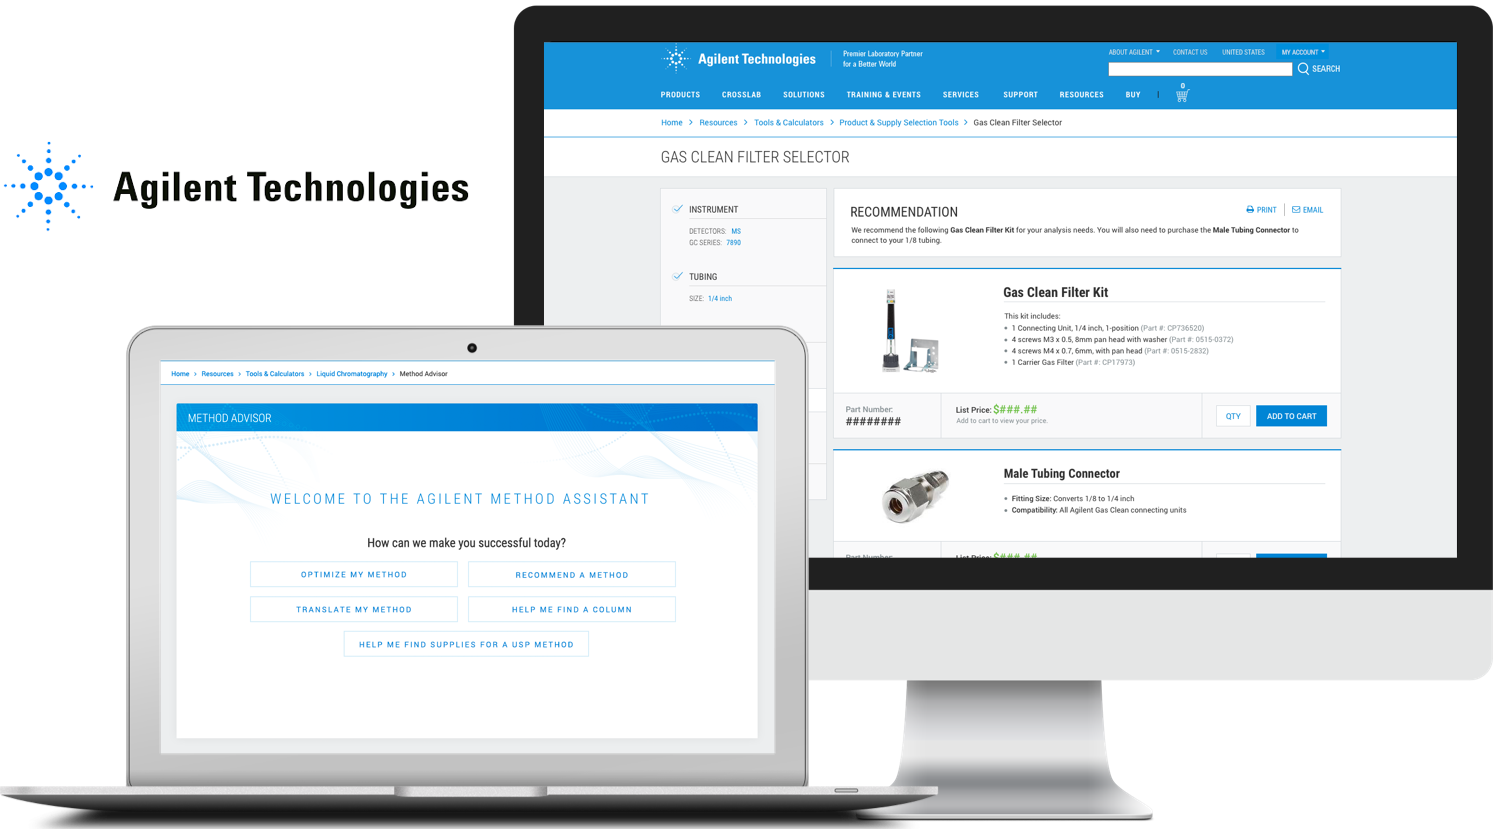 Agilent Guided Selling - Site-wide strategy and selection tool redesign to provide trusted solutions.